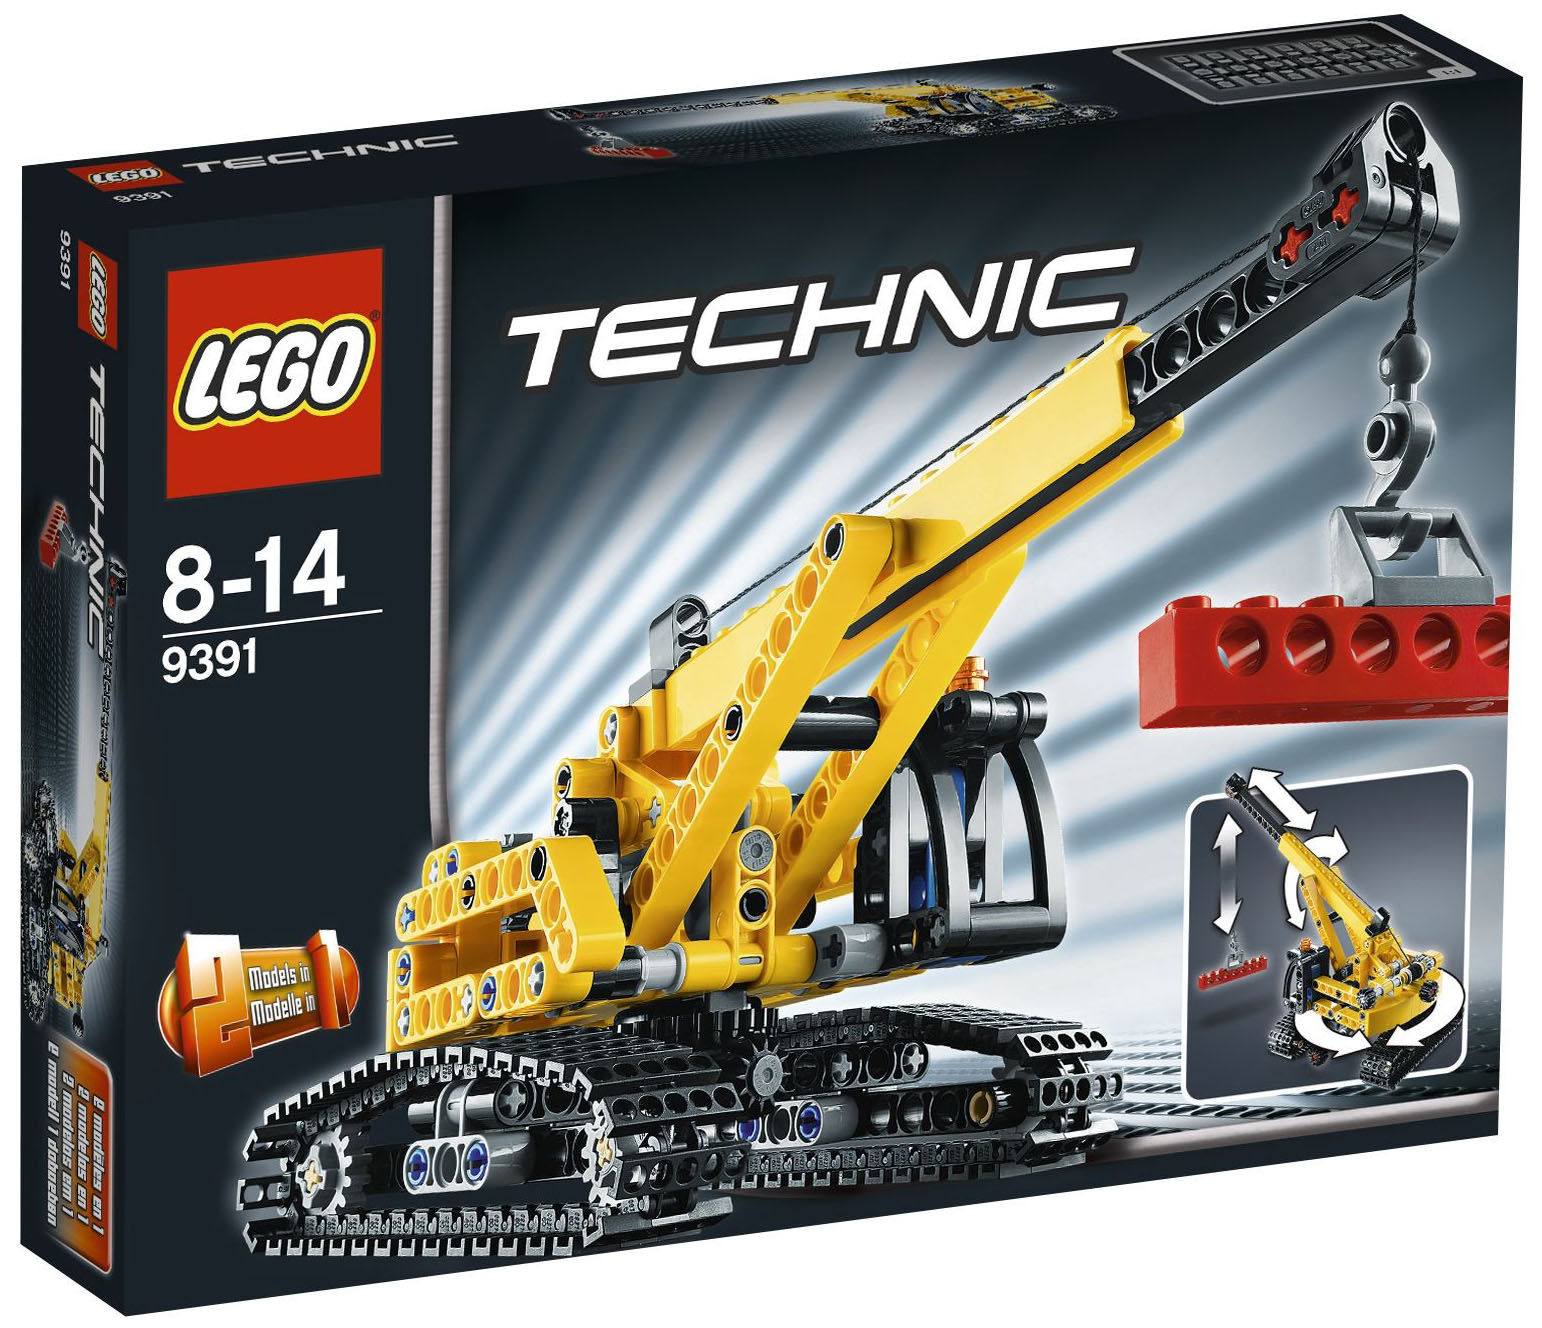 lego technic 9391 pas cher la grue sur chenilles. Black Bedroom Furniture Sets. Home Design Ideas